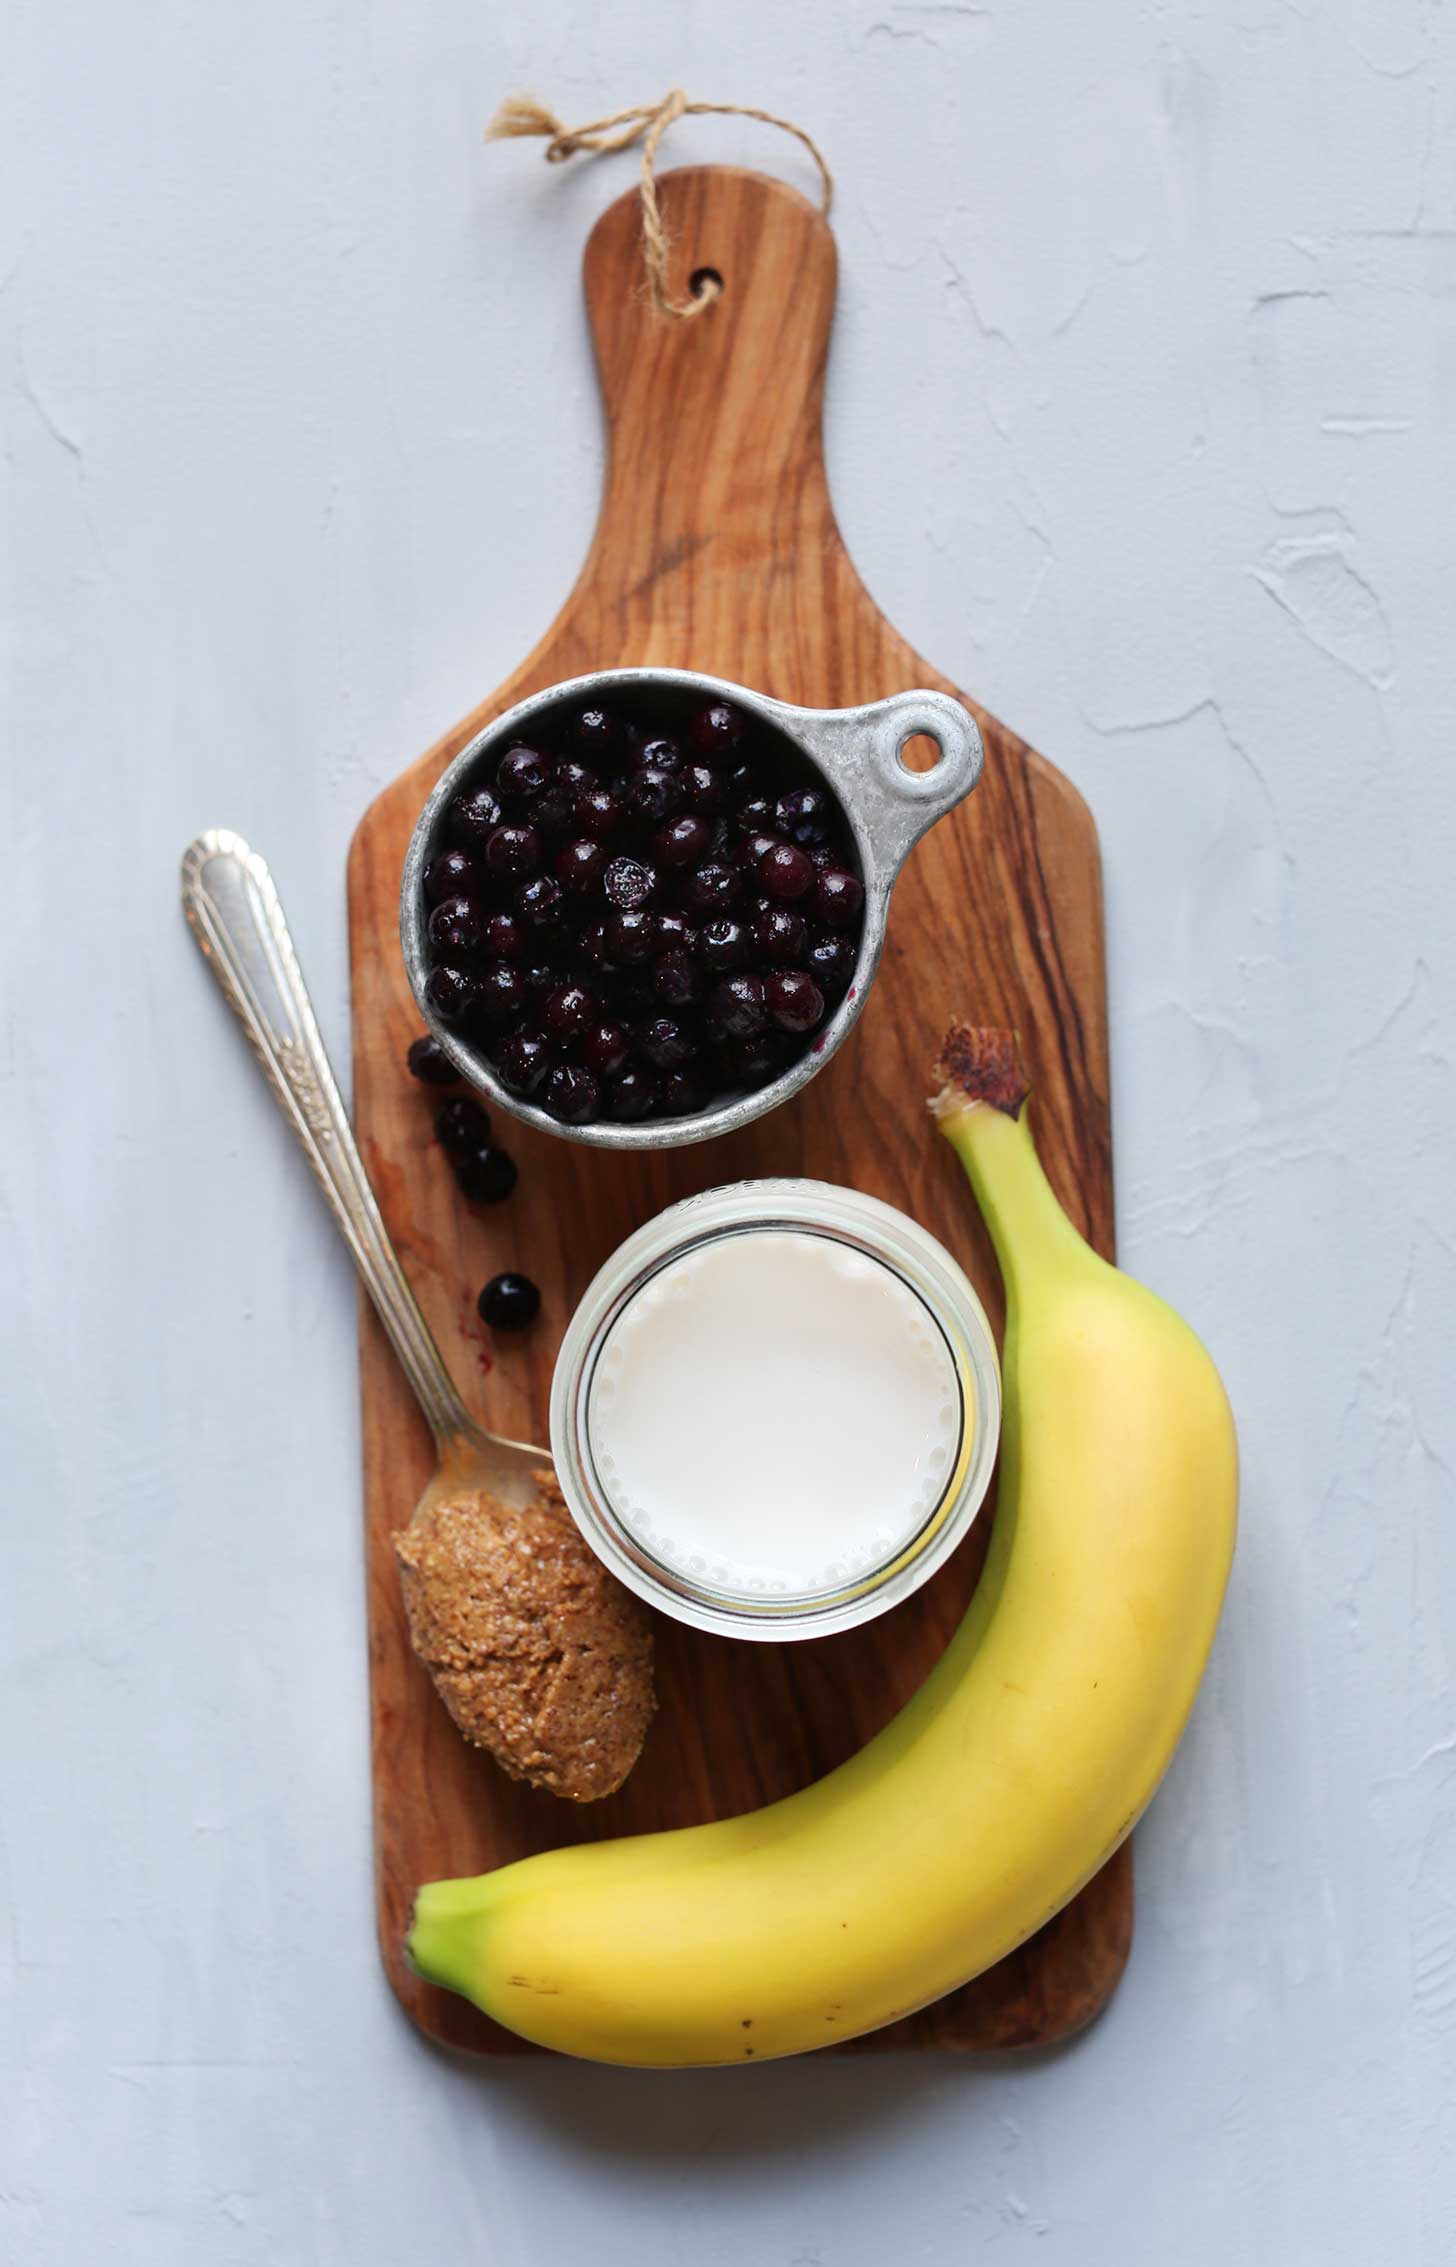 Wood board with blueberries, almond milk, almond butter, and banana for making a delicious vegan smoothie recipe